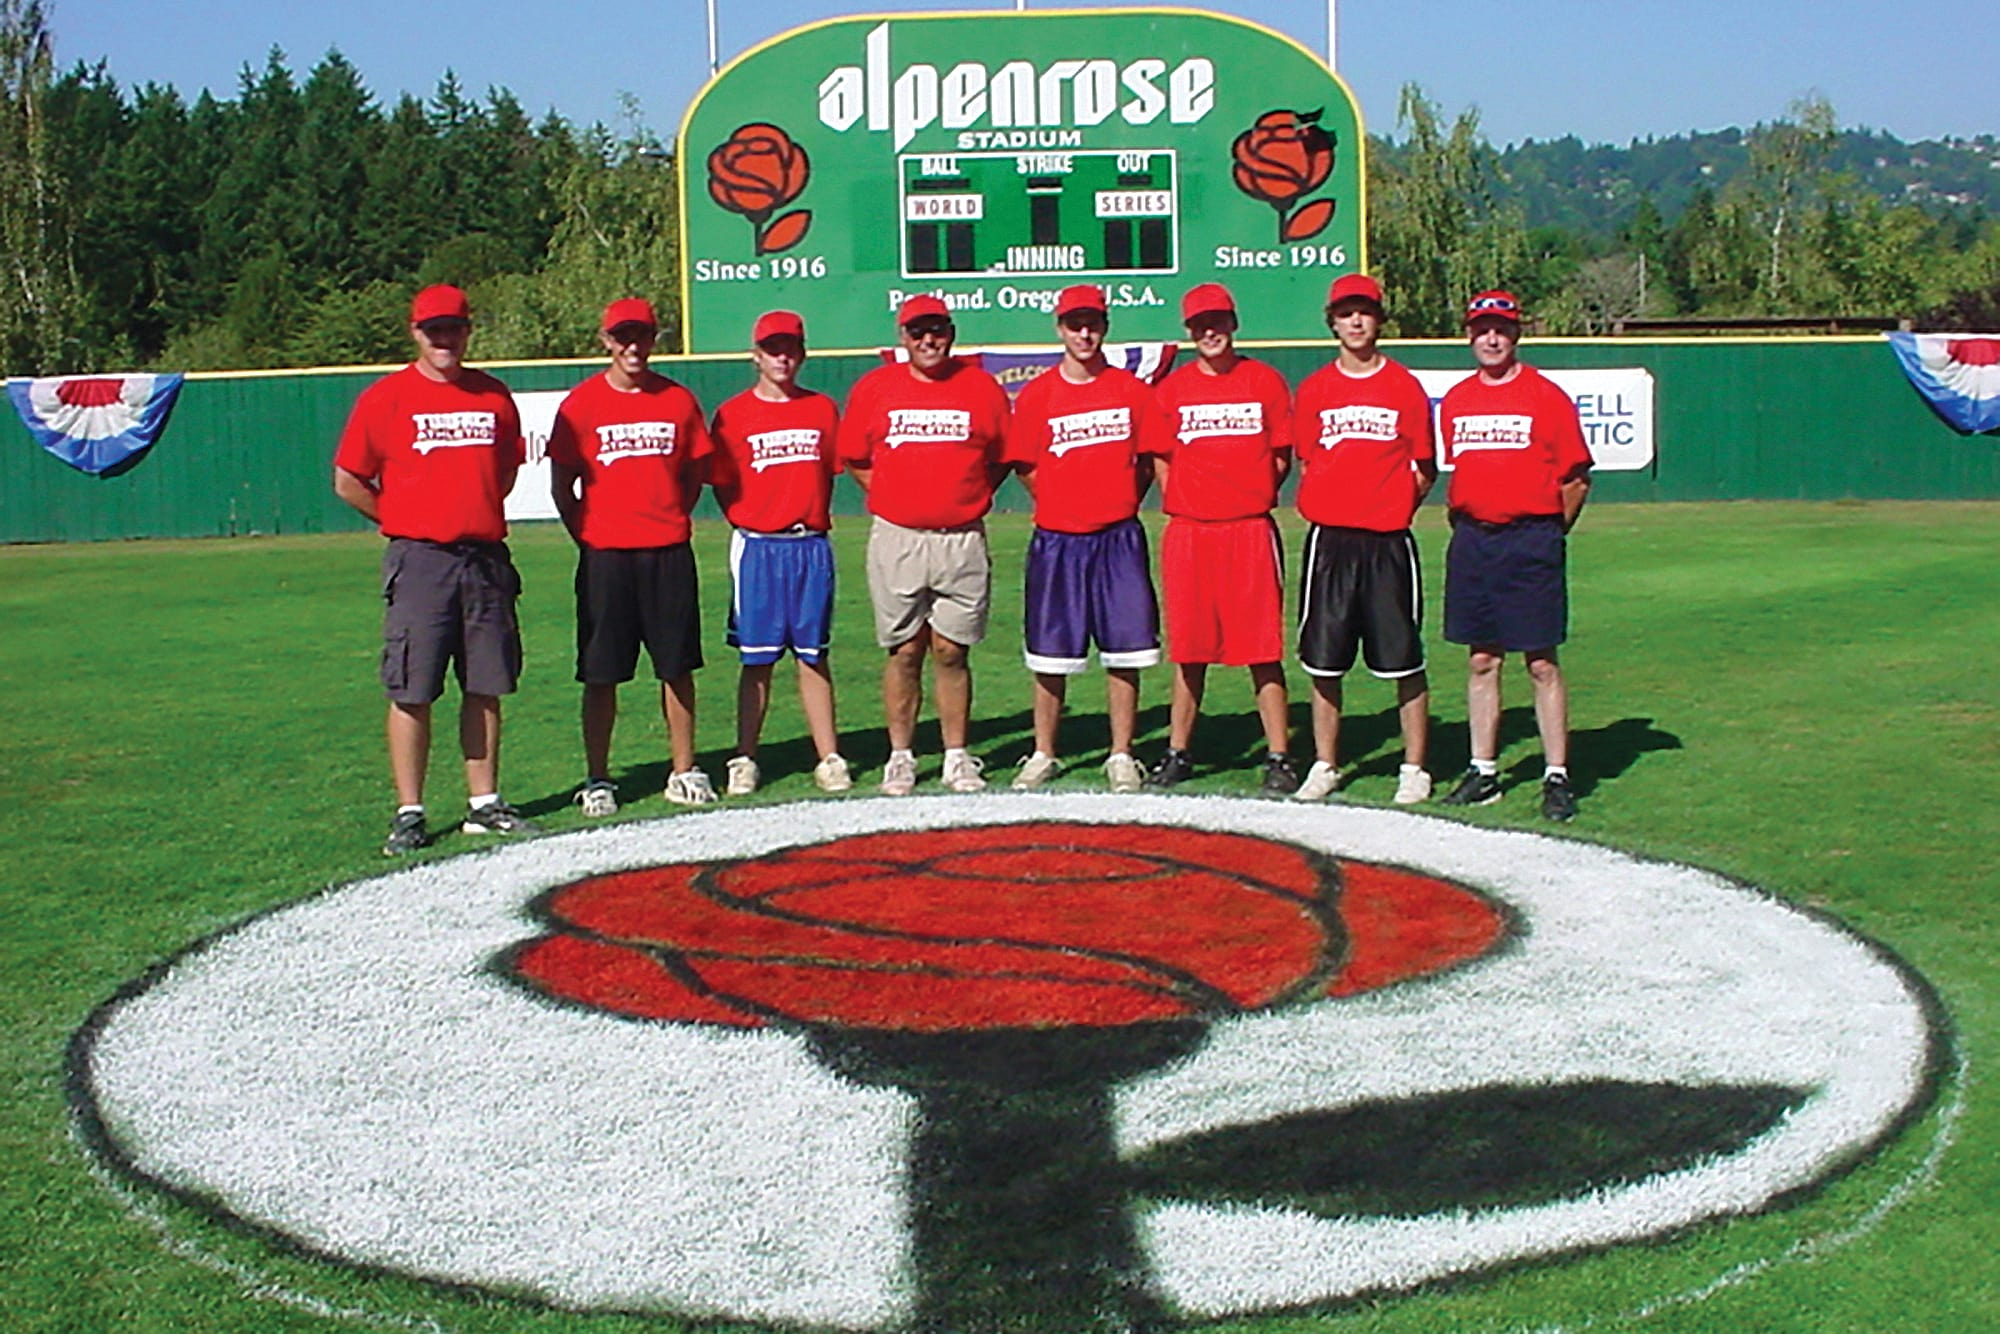 alpenrose-group-shot-on-field